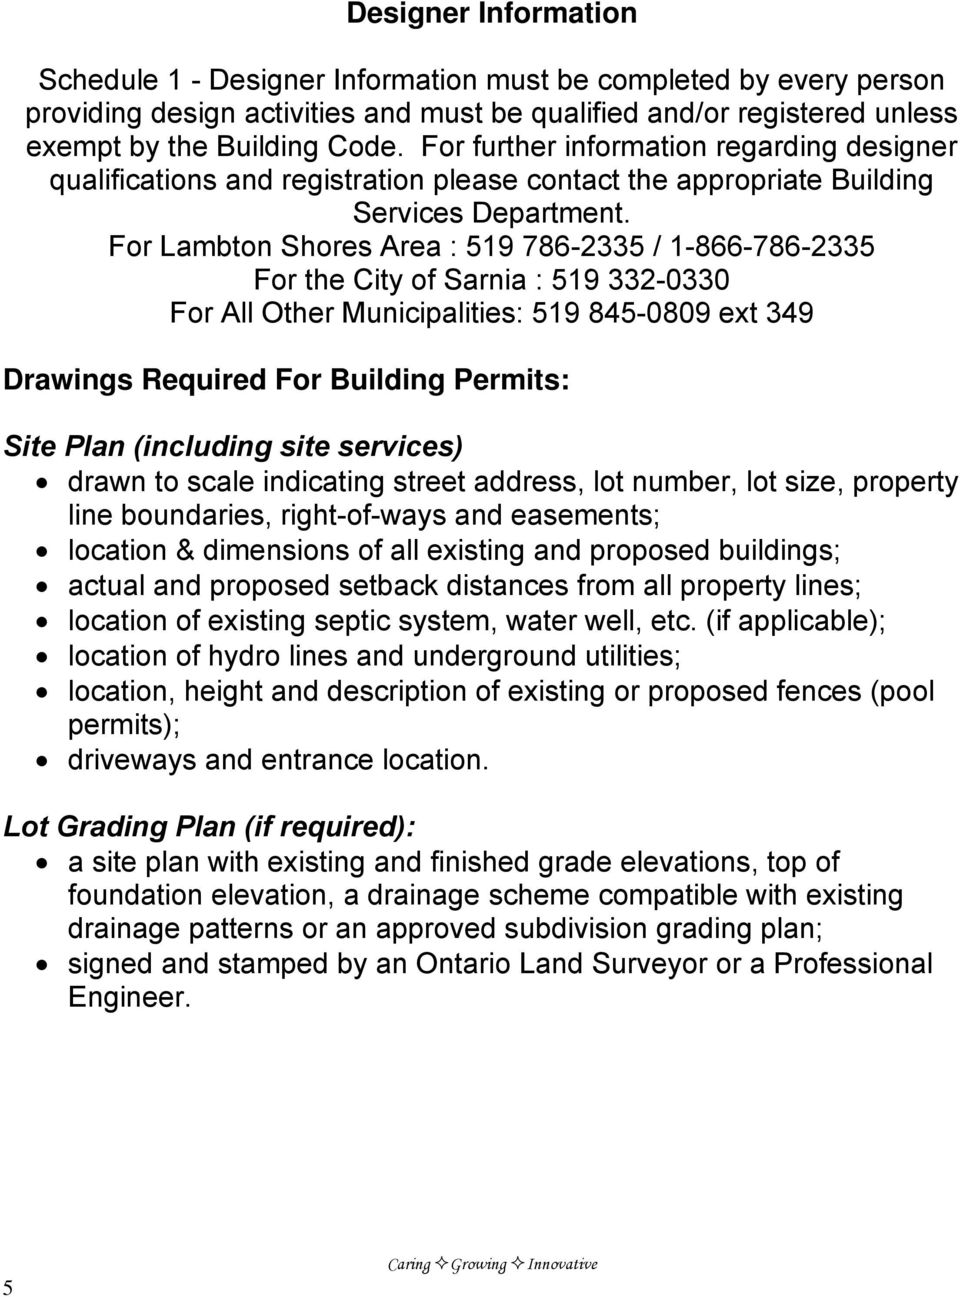 For Lambton Shores Area : 519 786-2335 / 1-866-786-2335 For the City of Sarnia : 519 332-0330 For All Other Municipalities: 519 845-0809 ext 349 Drawings Required For Building Permits: Site Plan